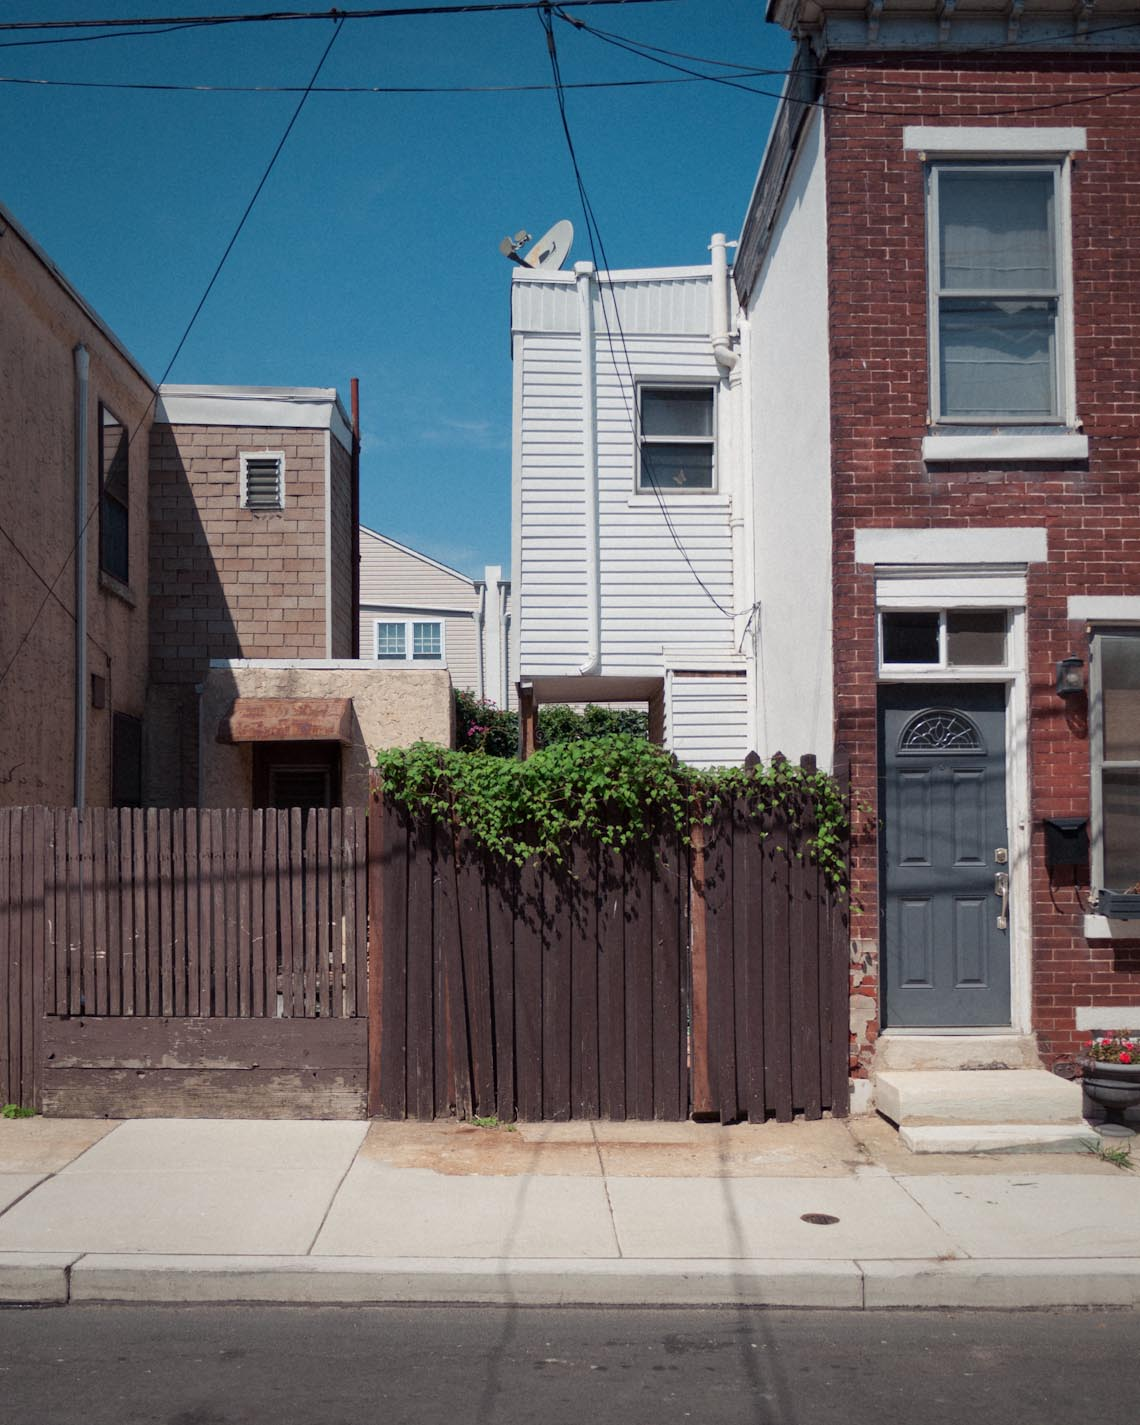 Philly_Homes.jpg